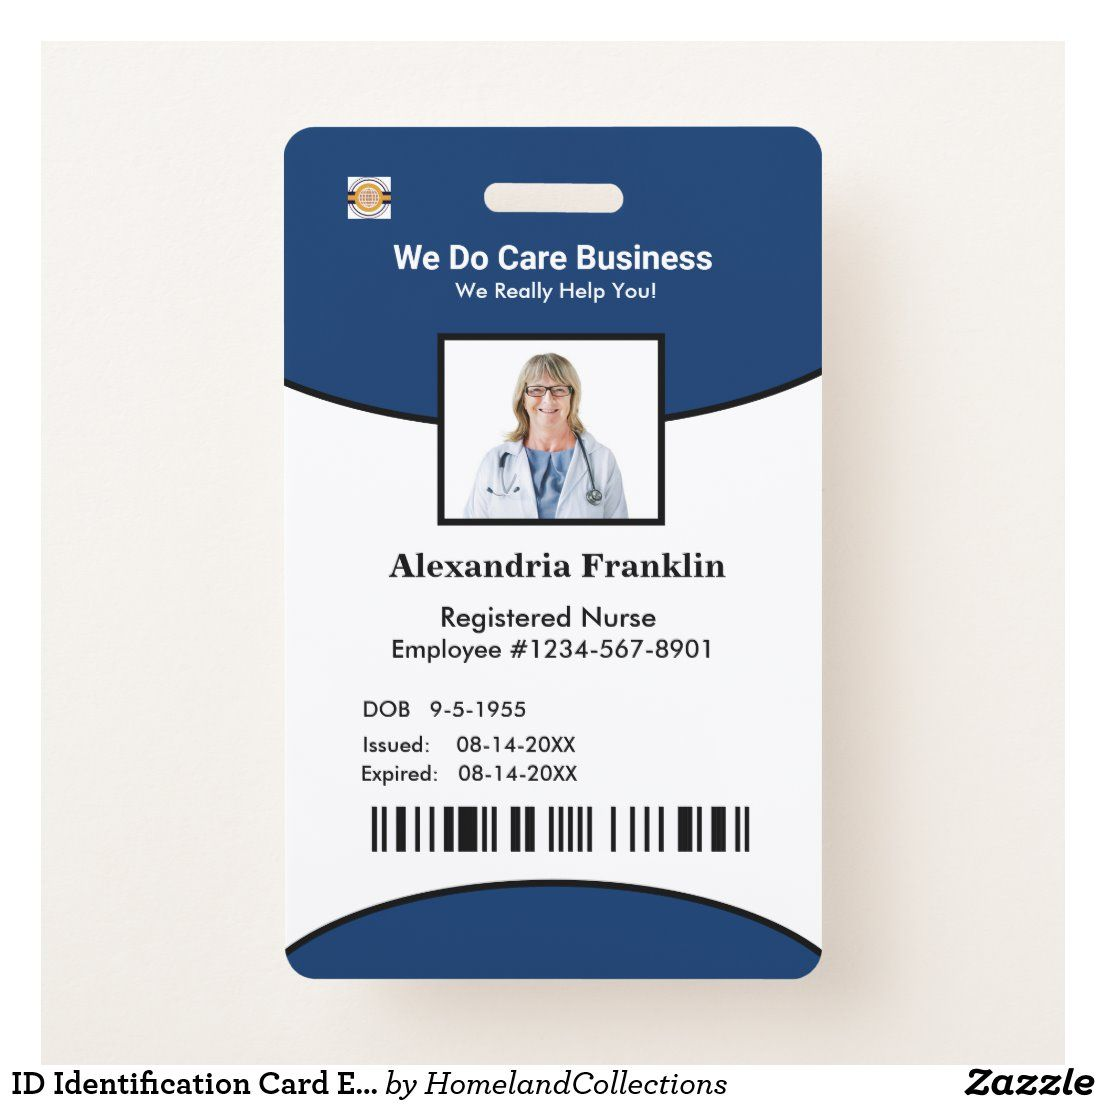 Id Identification Card Bar Code Photo Employee Badge Zazzle Com Employee Id Card Business Photos Cool Business Cards